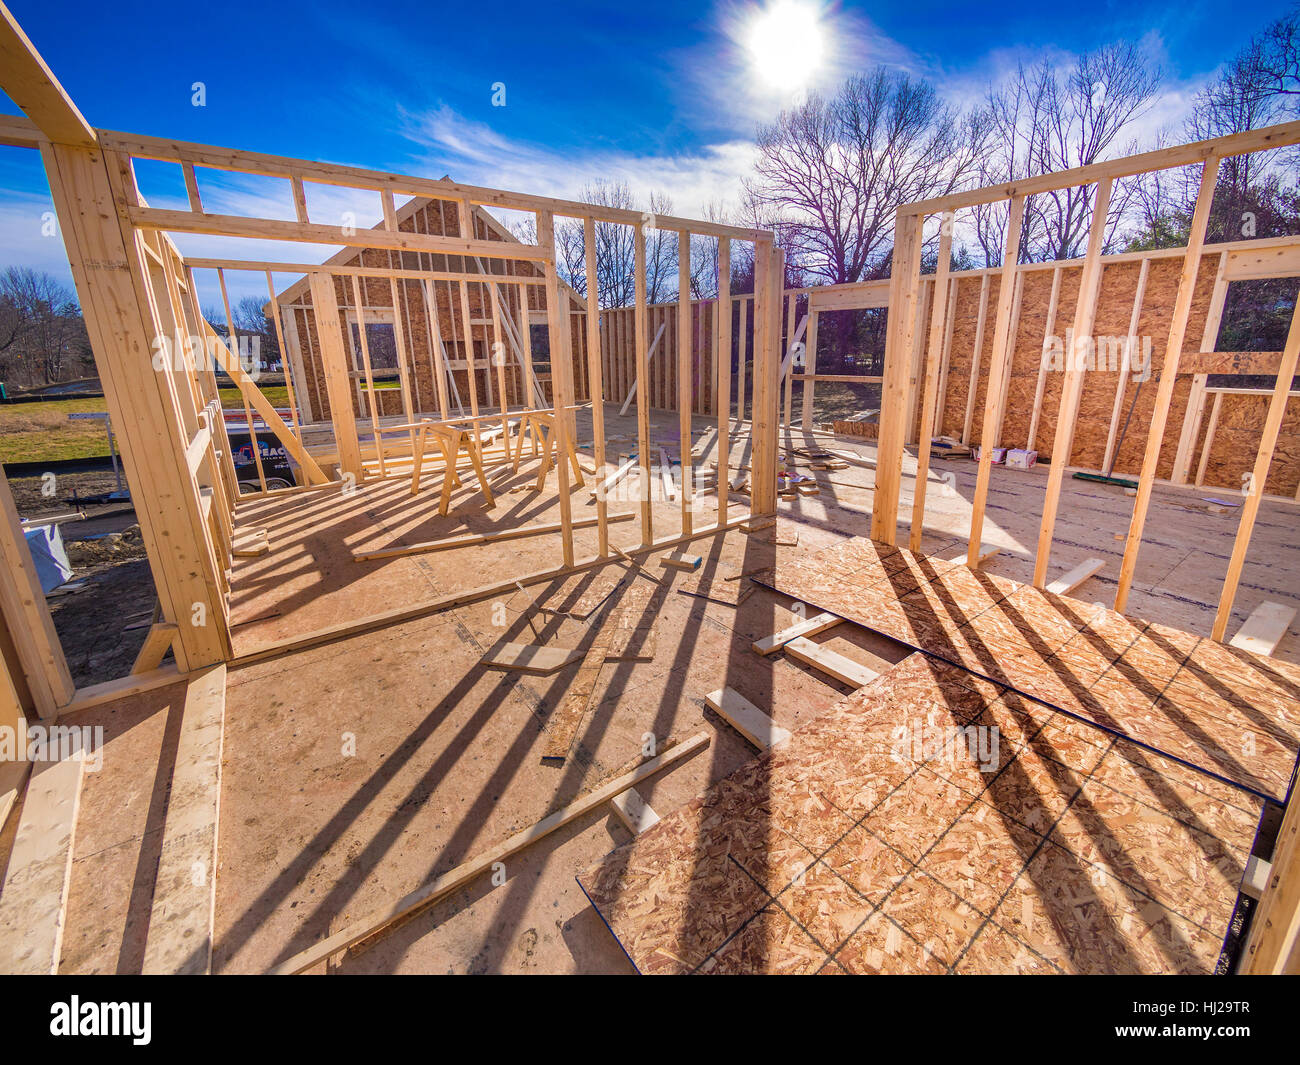 House building build wood new frame carpentry for How to build a house online program for free